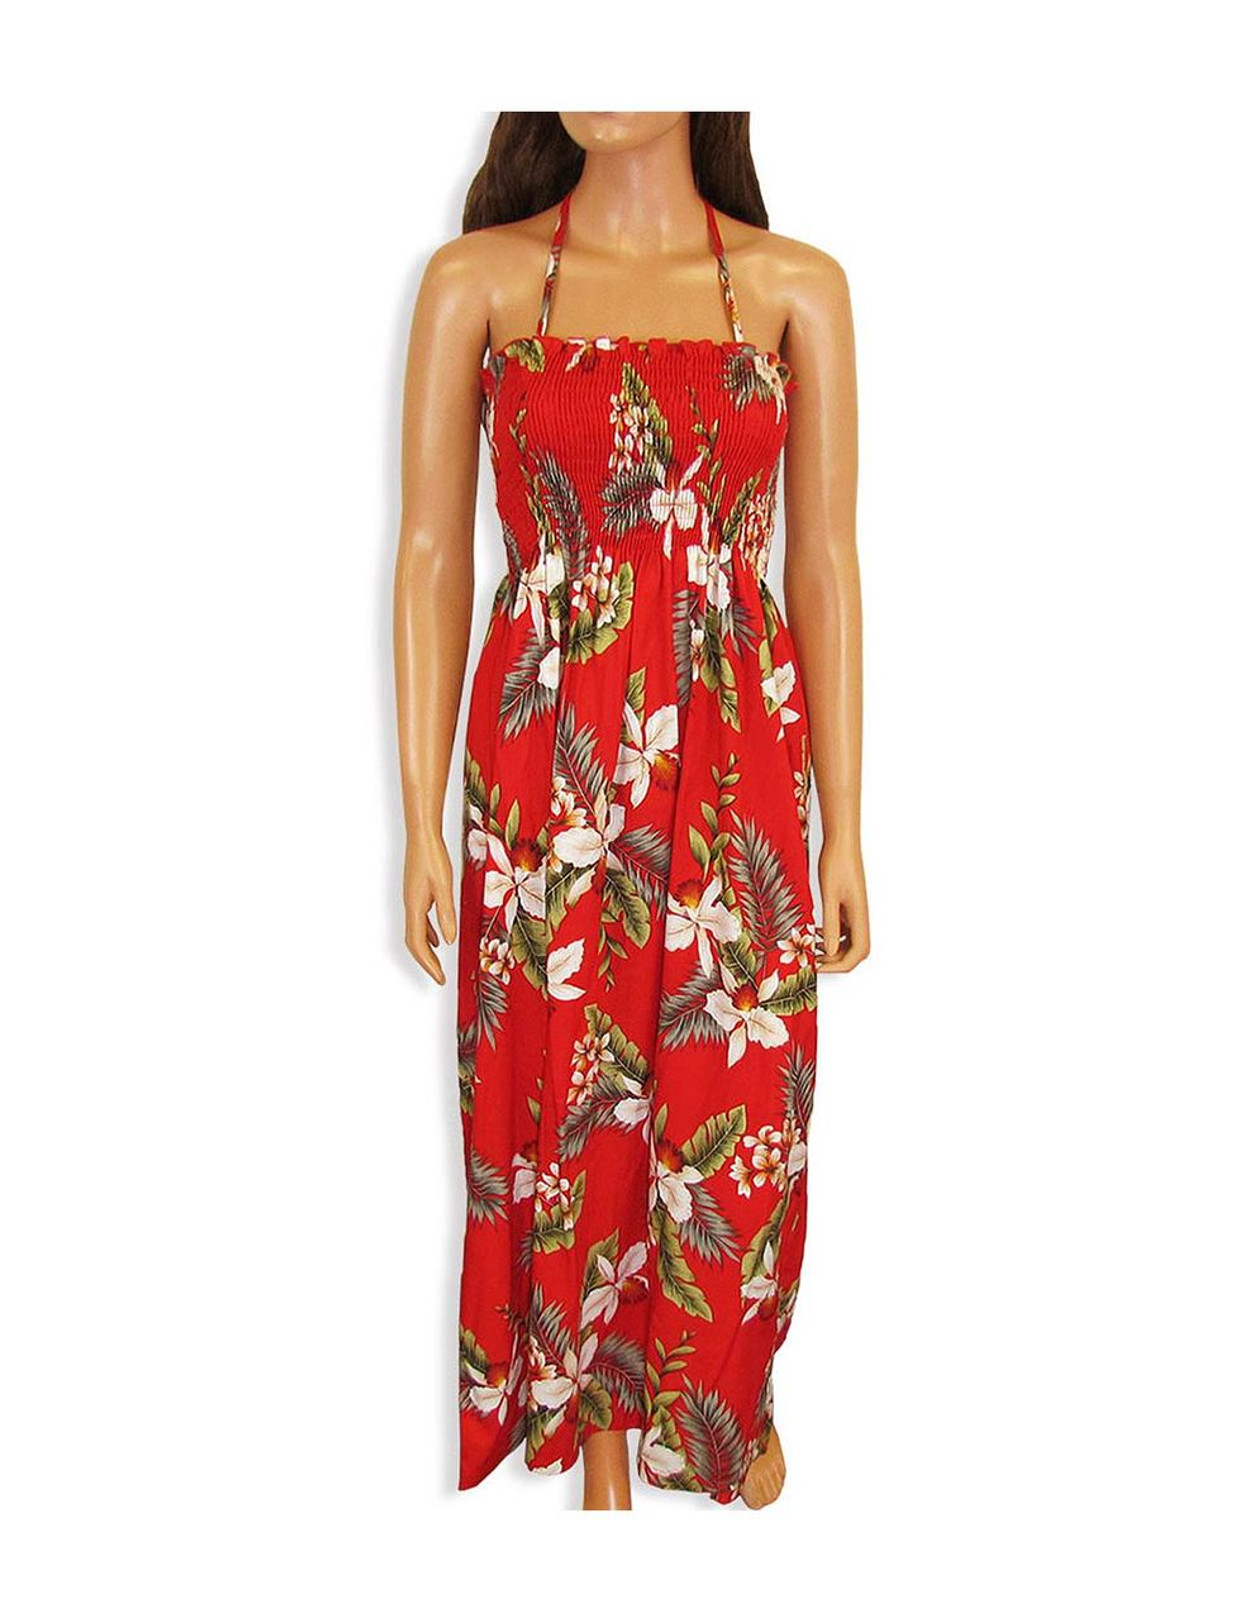 be42a7fb74 Tube Top Maxi Long Smock Floral Dress Hanapepe To Wear with Straps or  Strapless 100%